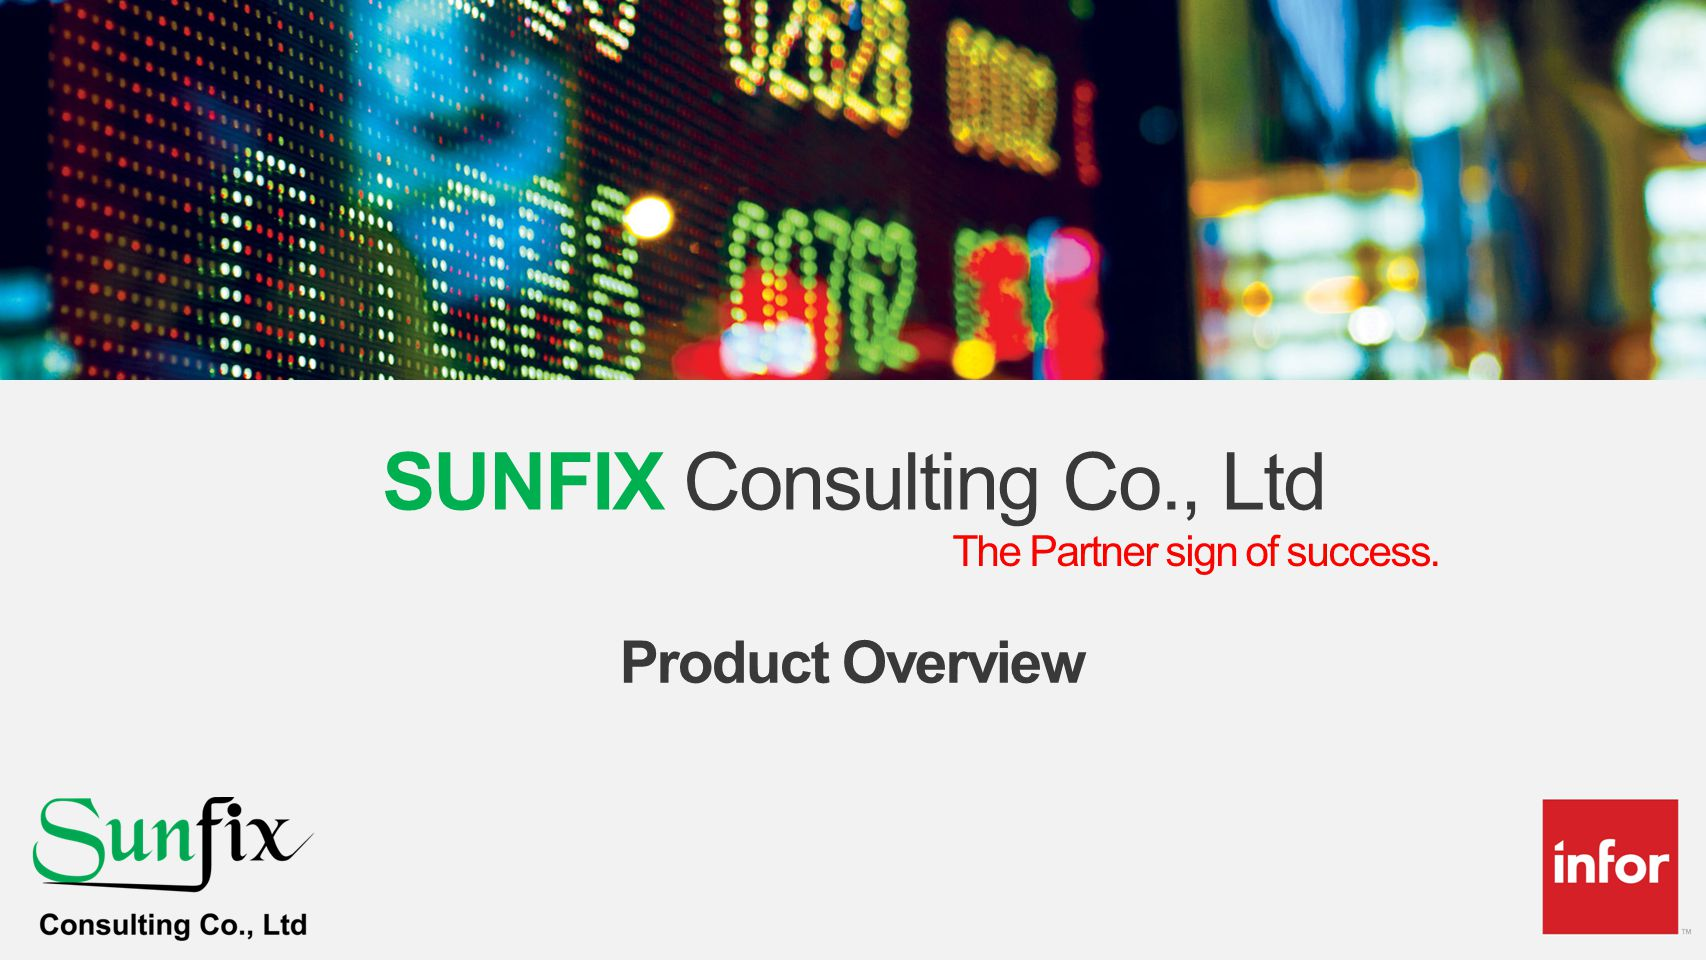 SUNFIX Consulting Co., Ltd The Partner sign of success. Product Overview